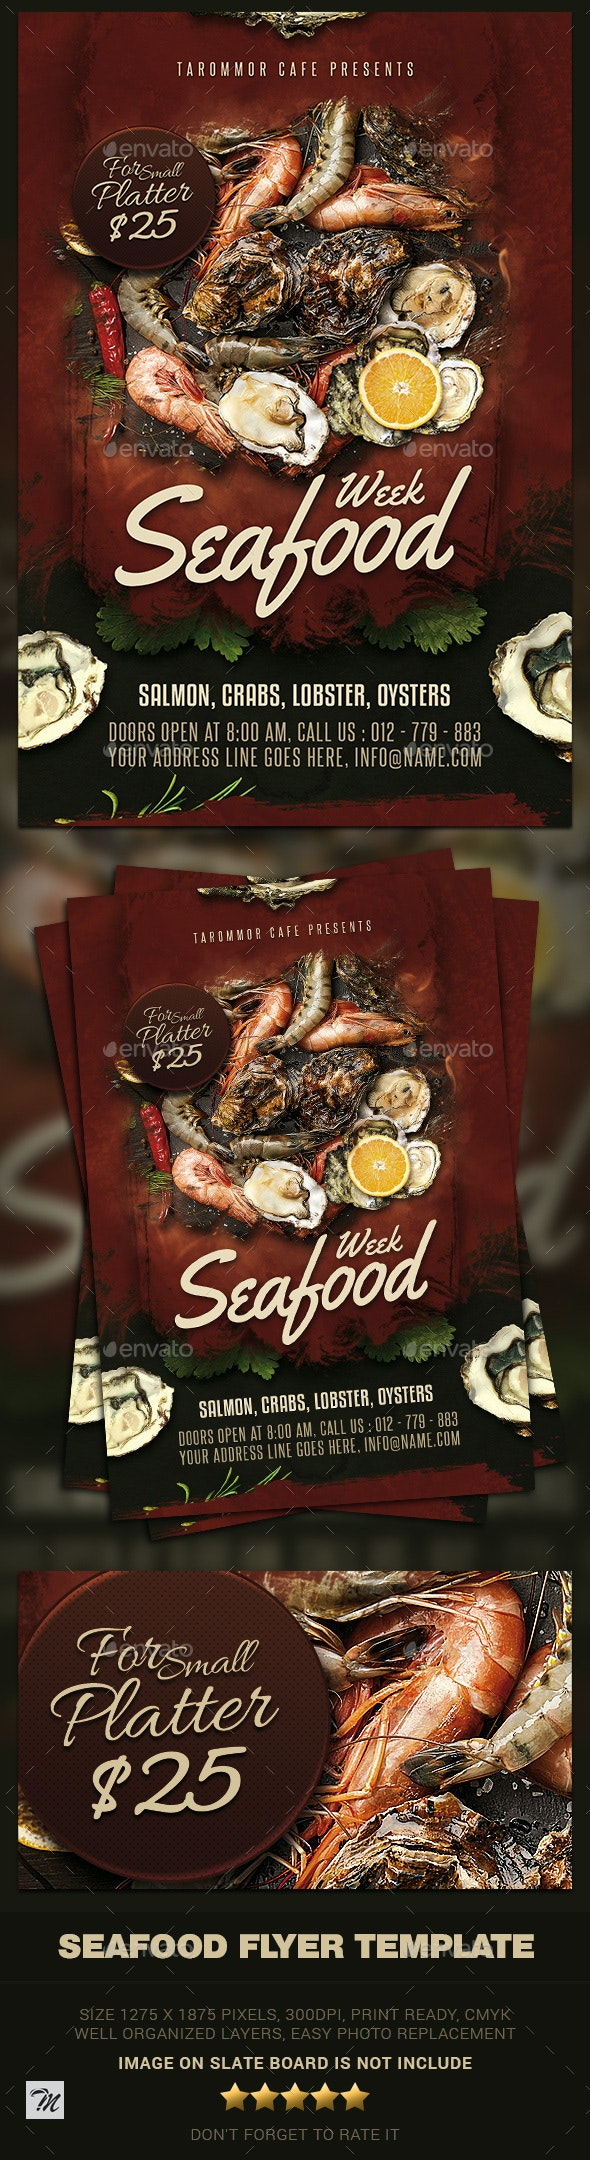 Seafood Flyer Template - Restaurant Flyers